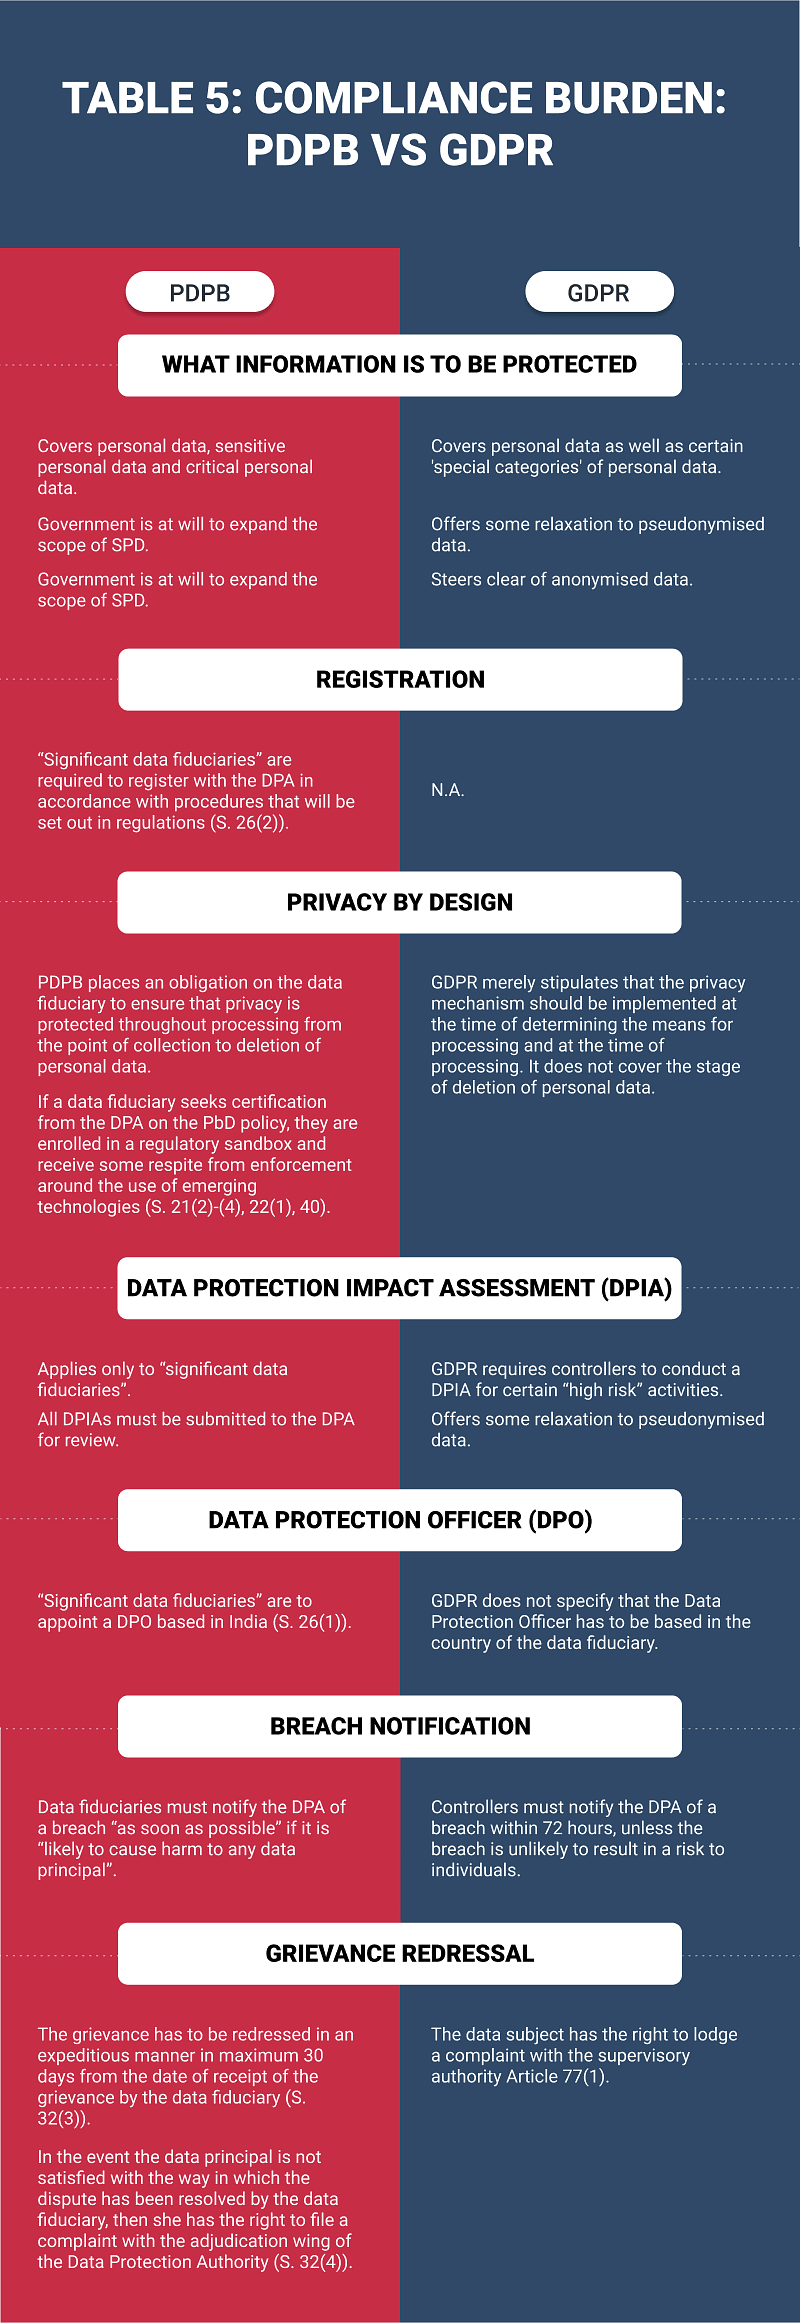 TABLE 5: COMPLIANCE BURDEN: PDPB VS GDPR